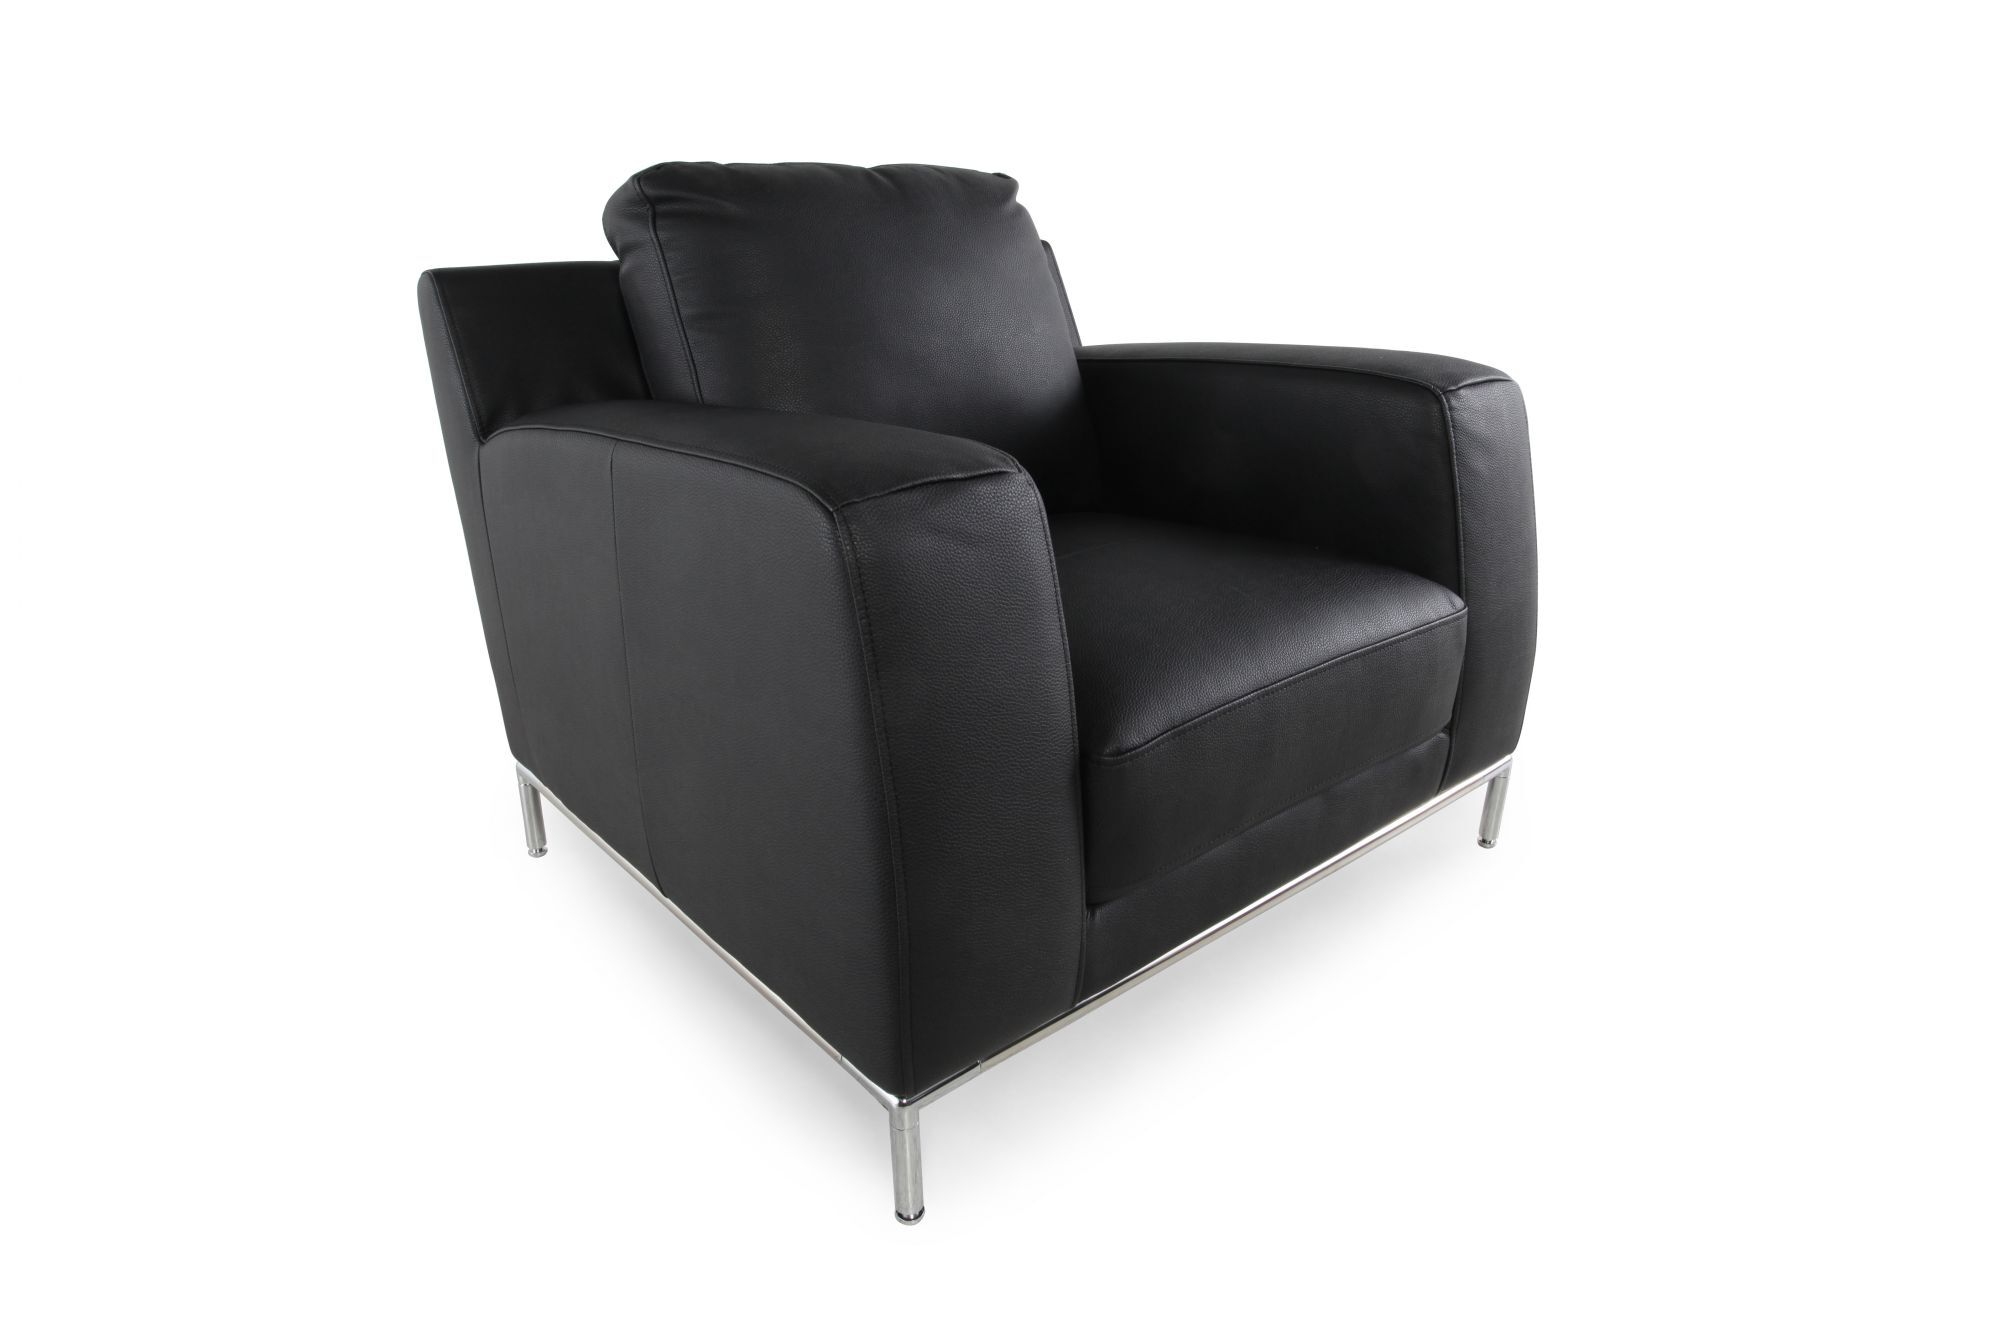 low profile chairs ethan allen queen anne dining contemporary 40 quot chair in ebony black mathis